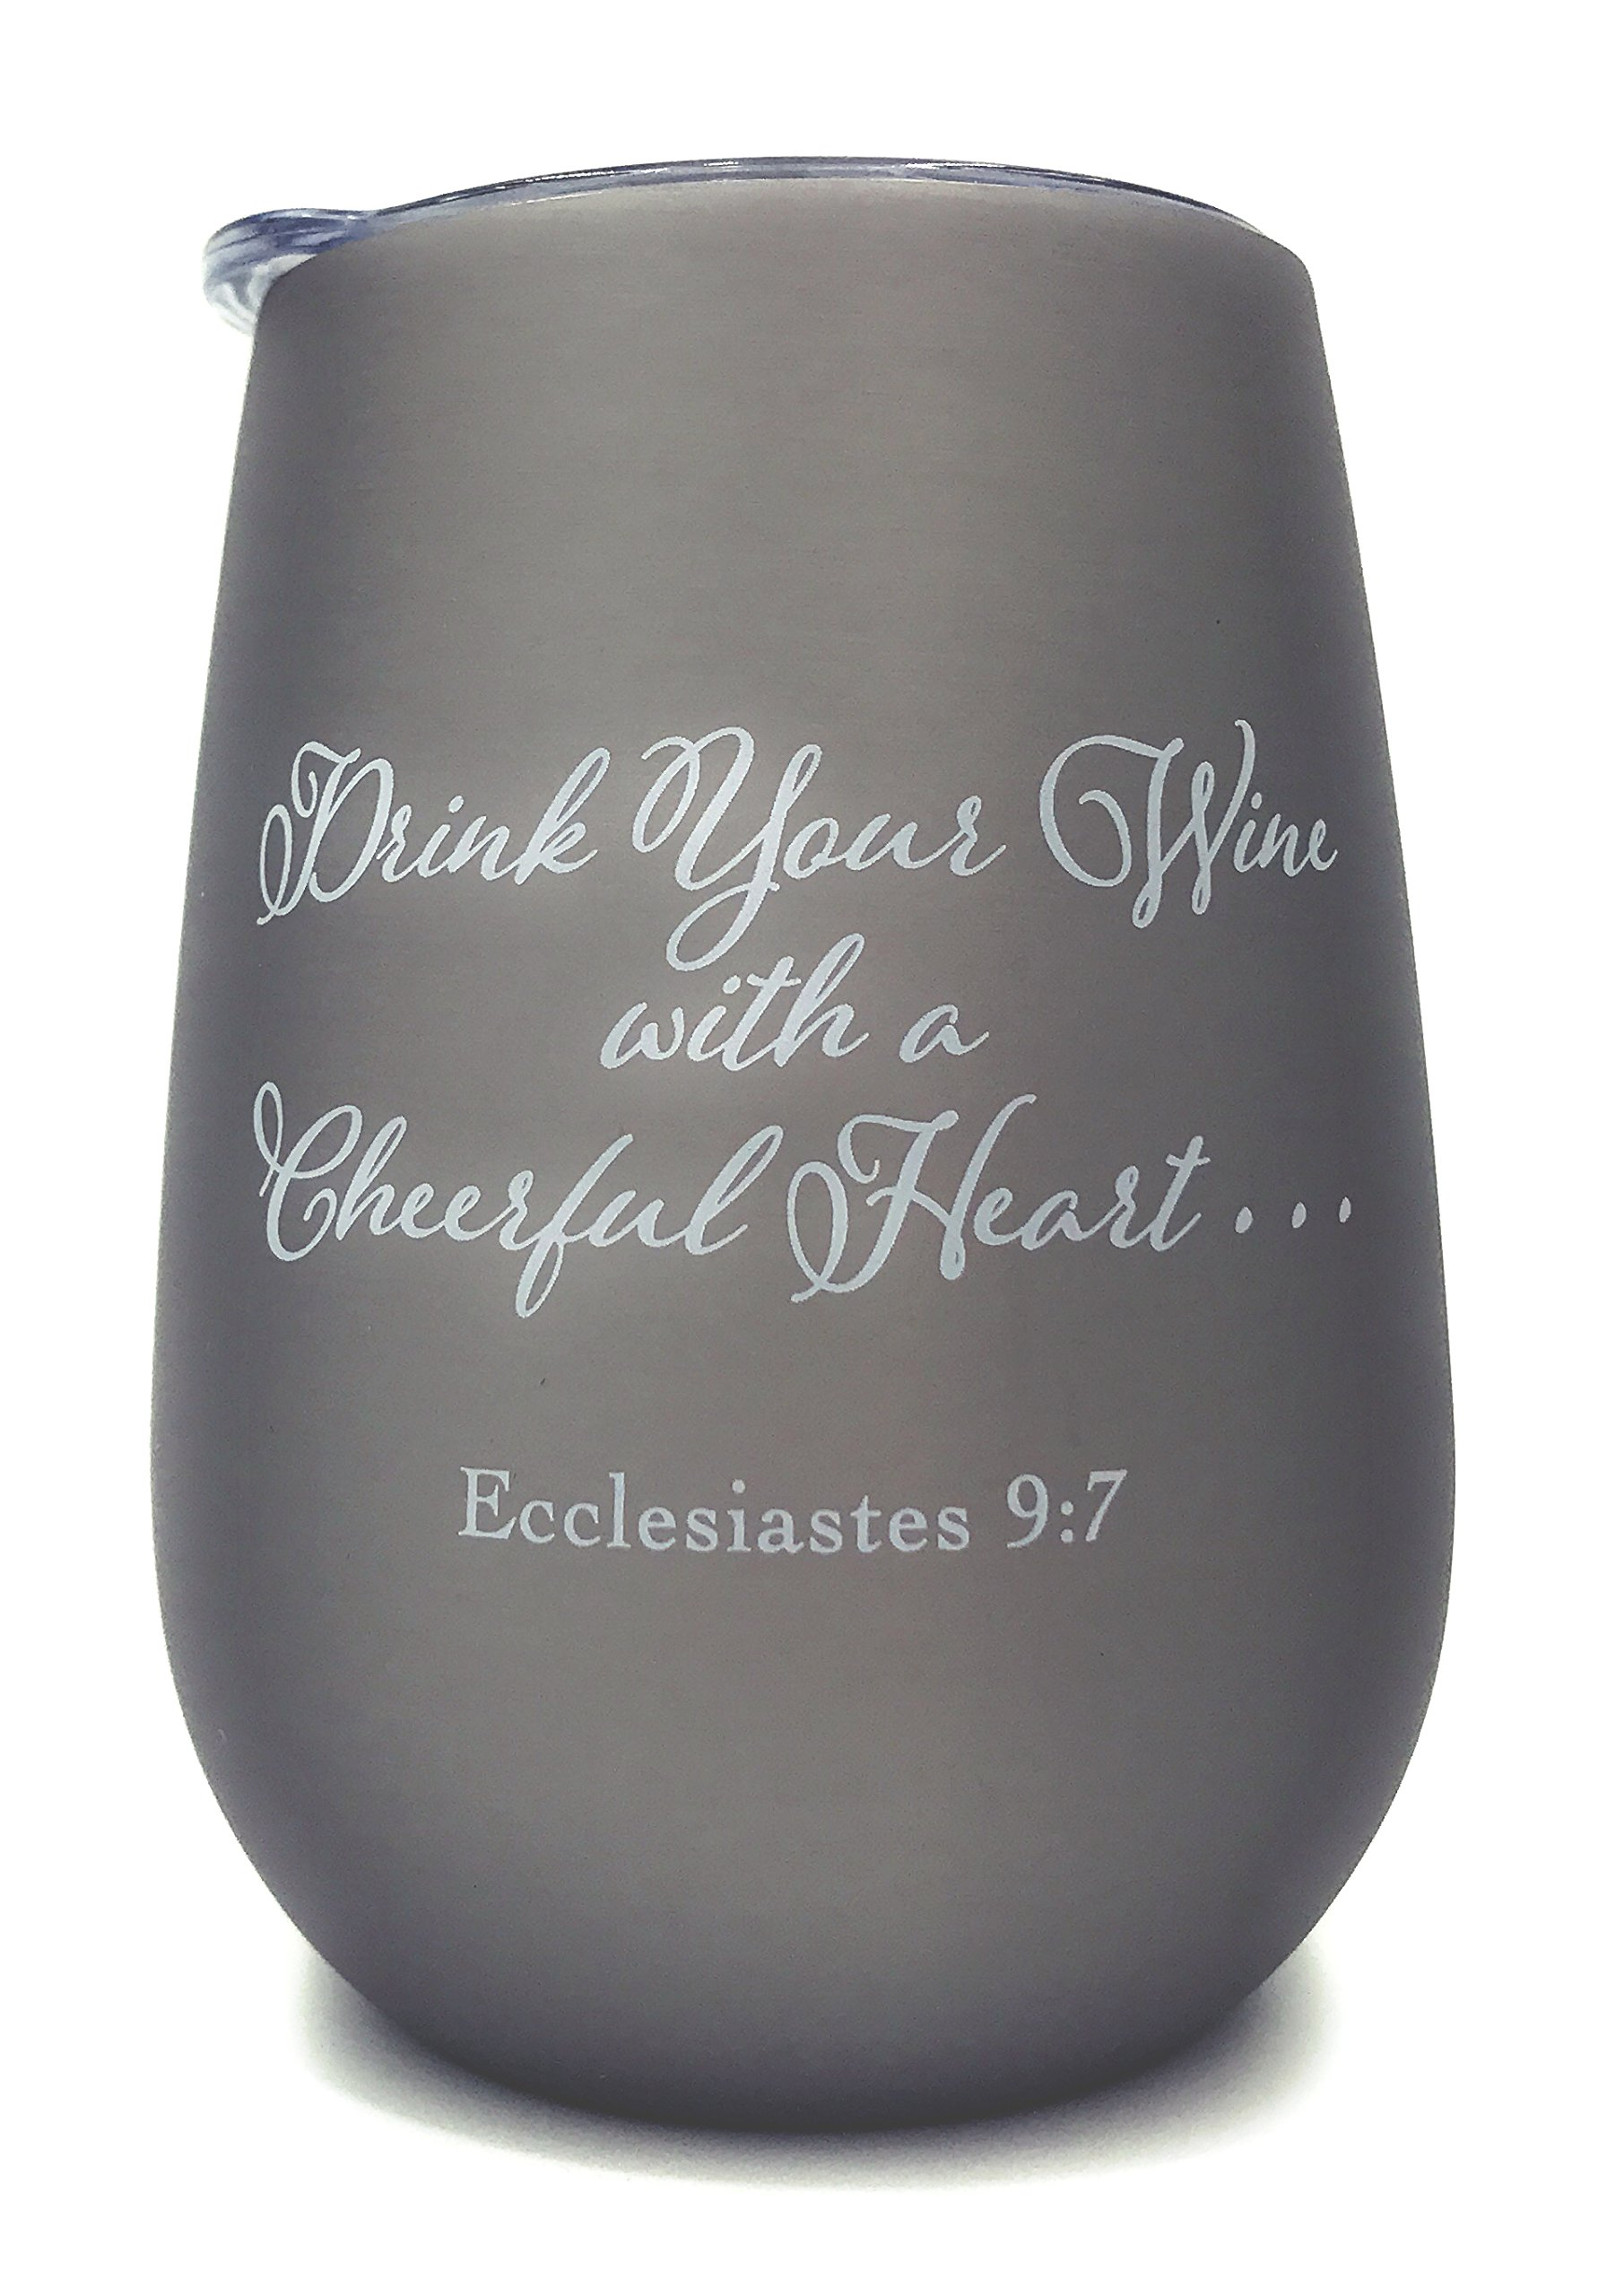 Christian Stemless Insulated Wine Glass Tumbler - Christian Bible Gift - Scripture - Motivational - Inspirational